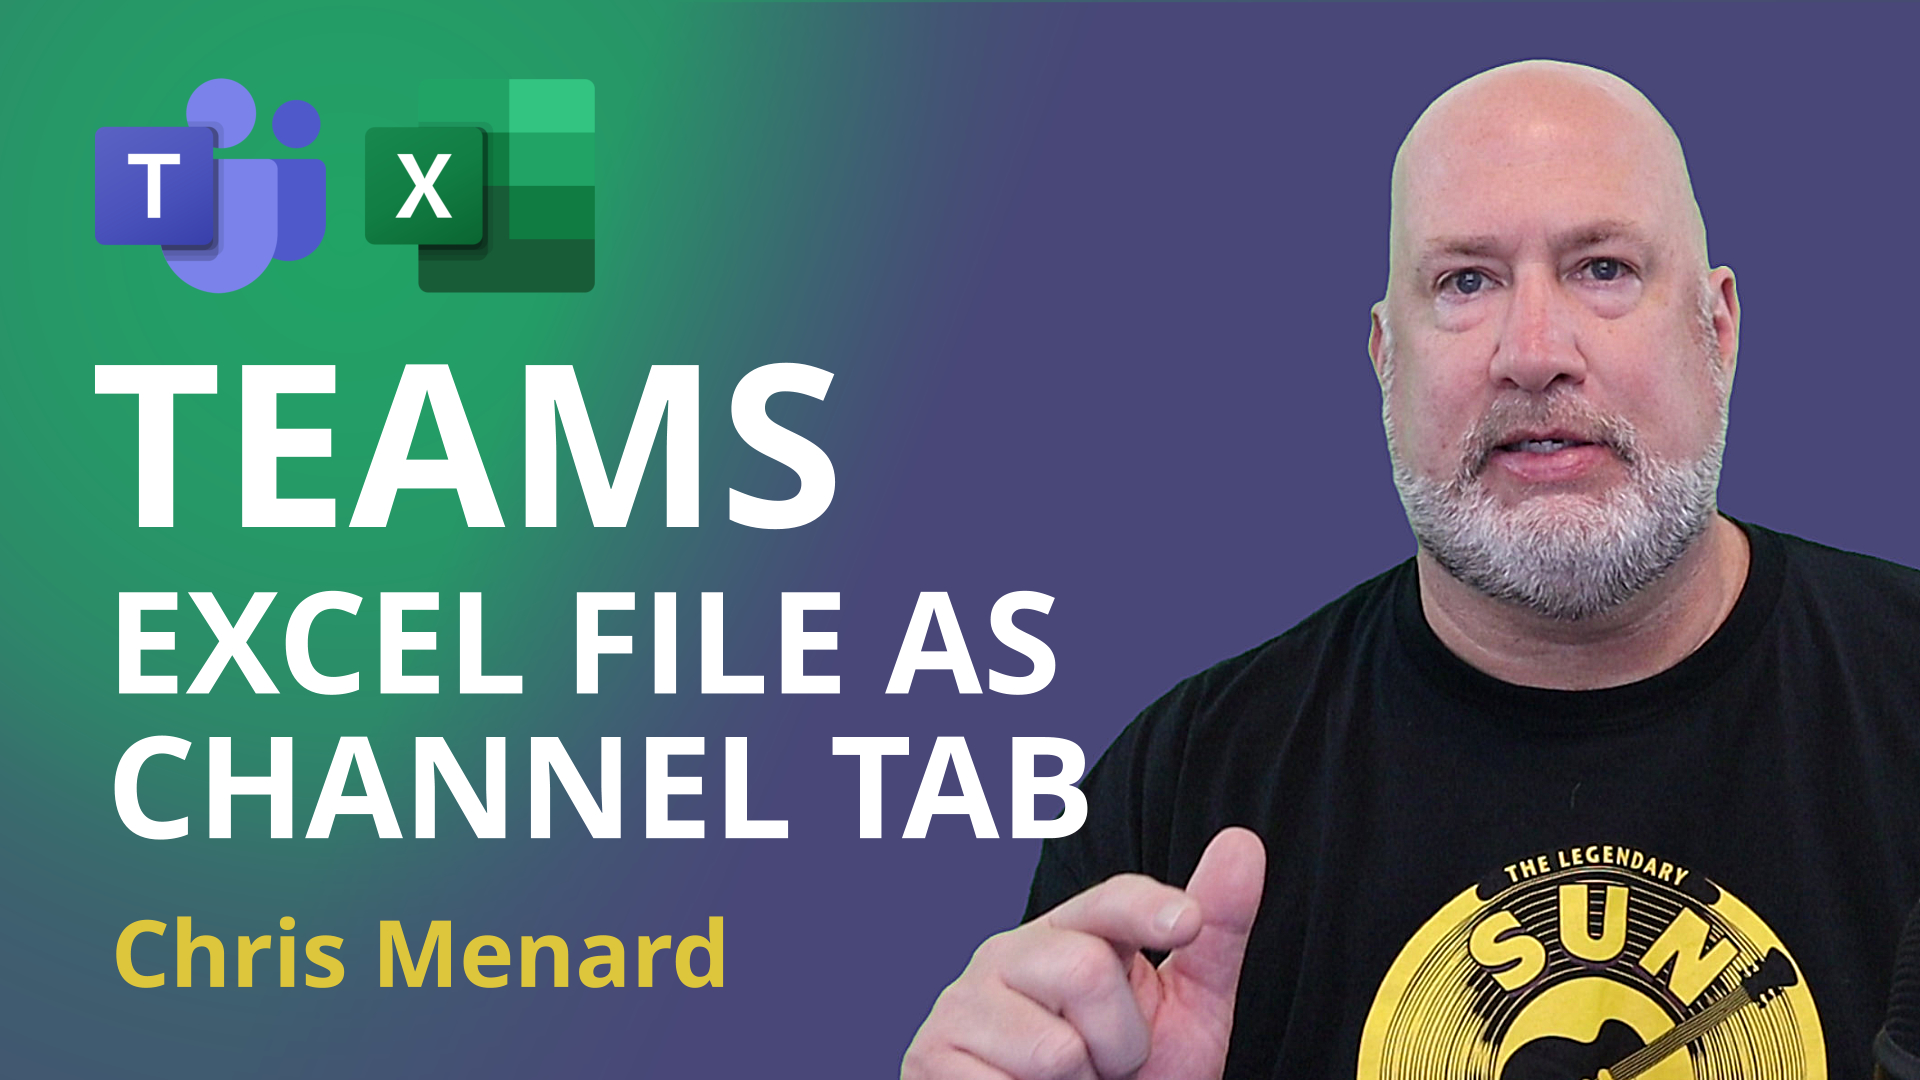 Teams - How to Add an Excel file or Word Doc to a Teams Channel Tab